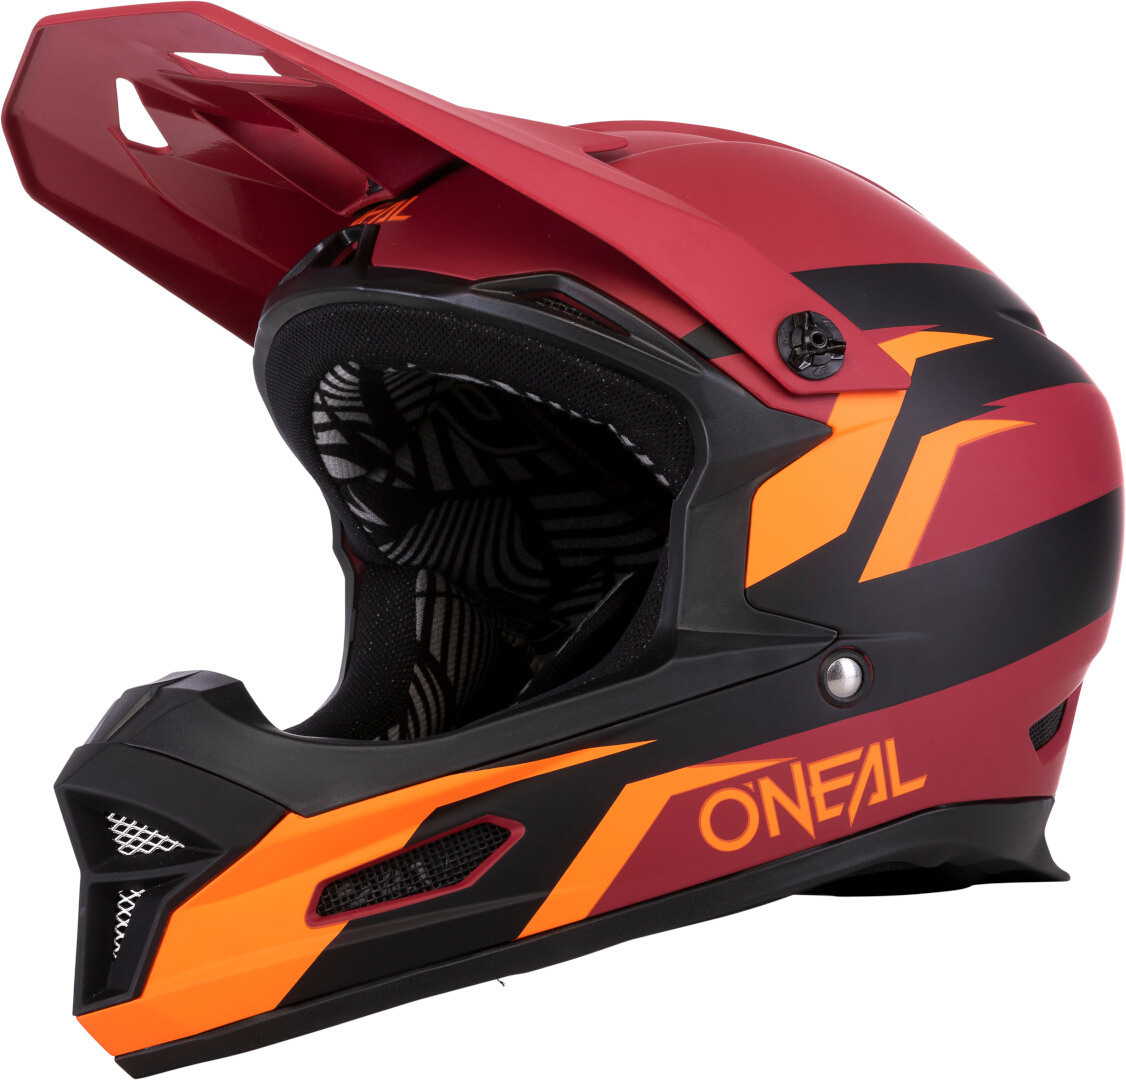 Oneal Fury Stage Downhill Helm, rot-orange, Größe L, rot-orange, Größe L